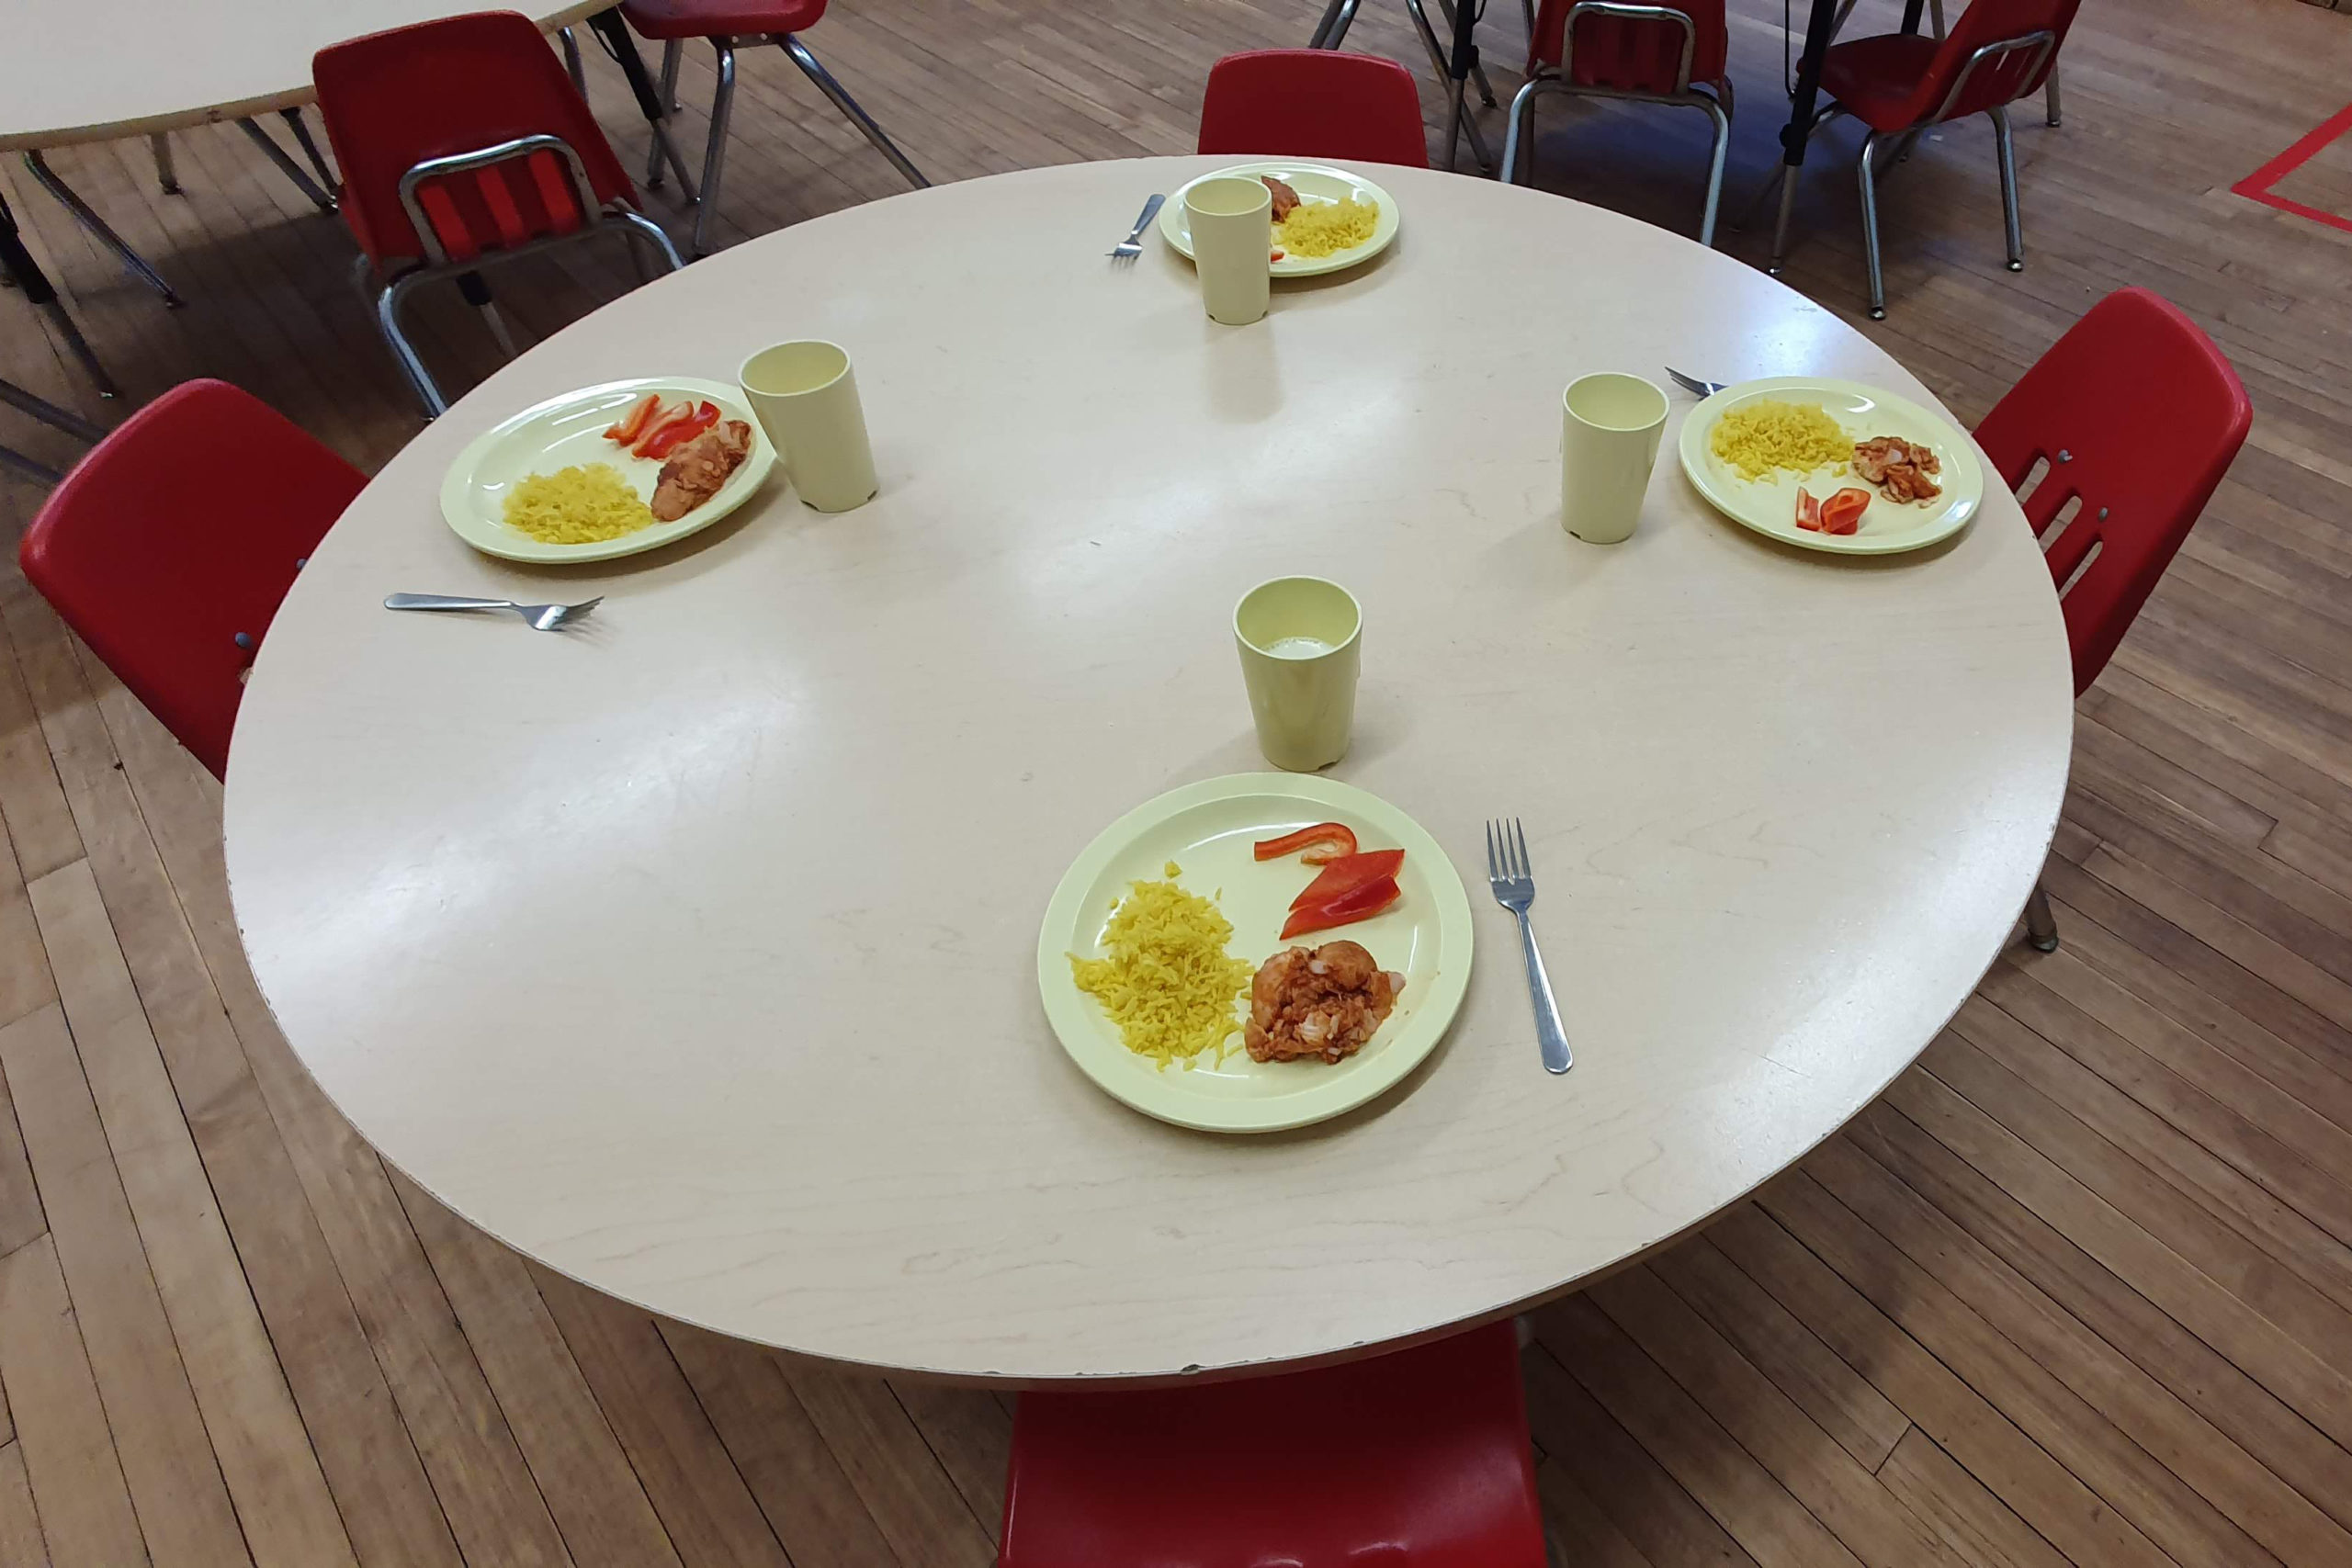 children's table set with food